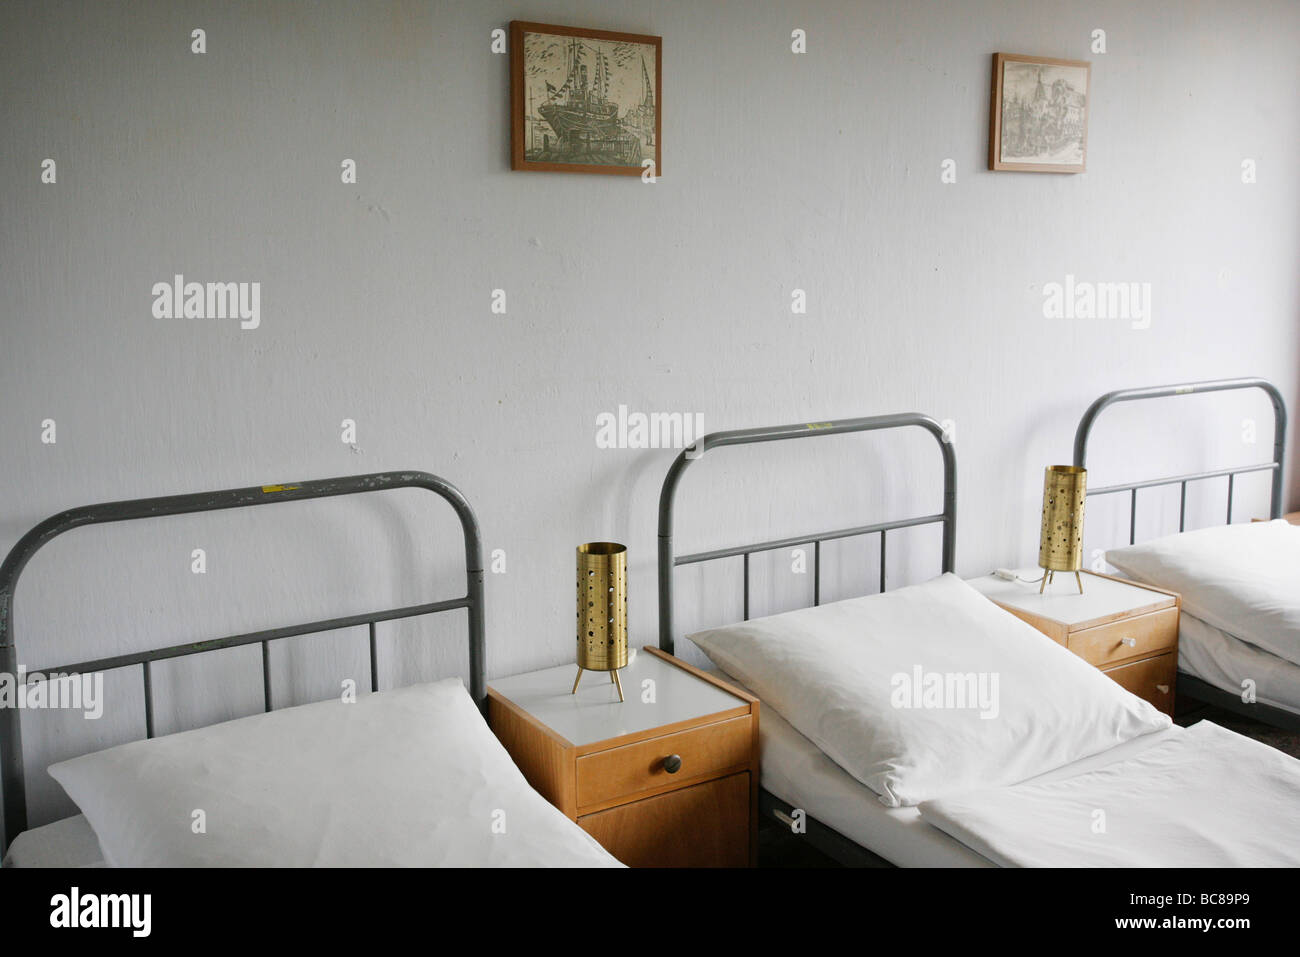 Muesum with beds in a room of a holiday home Prora Stock Photo